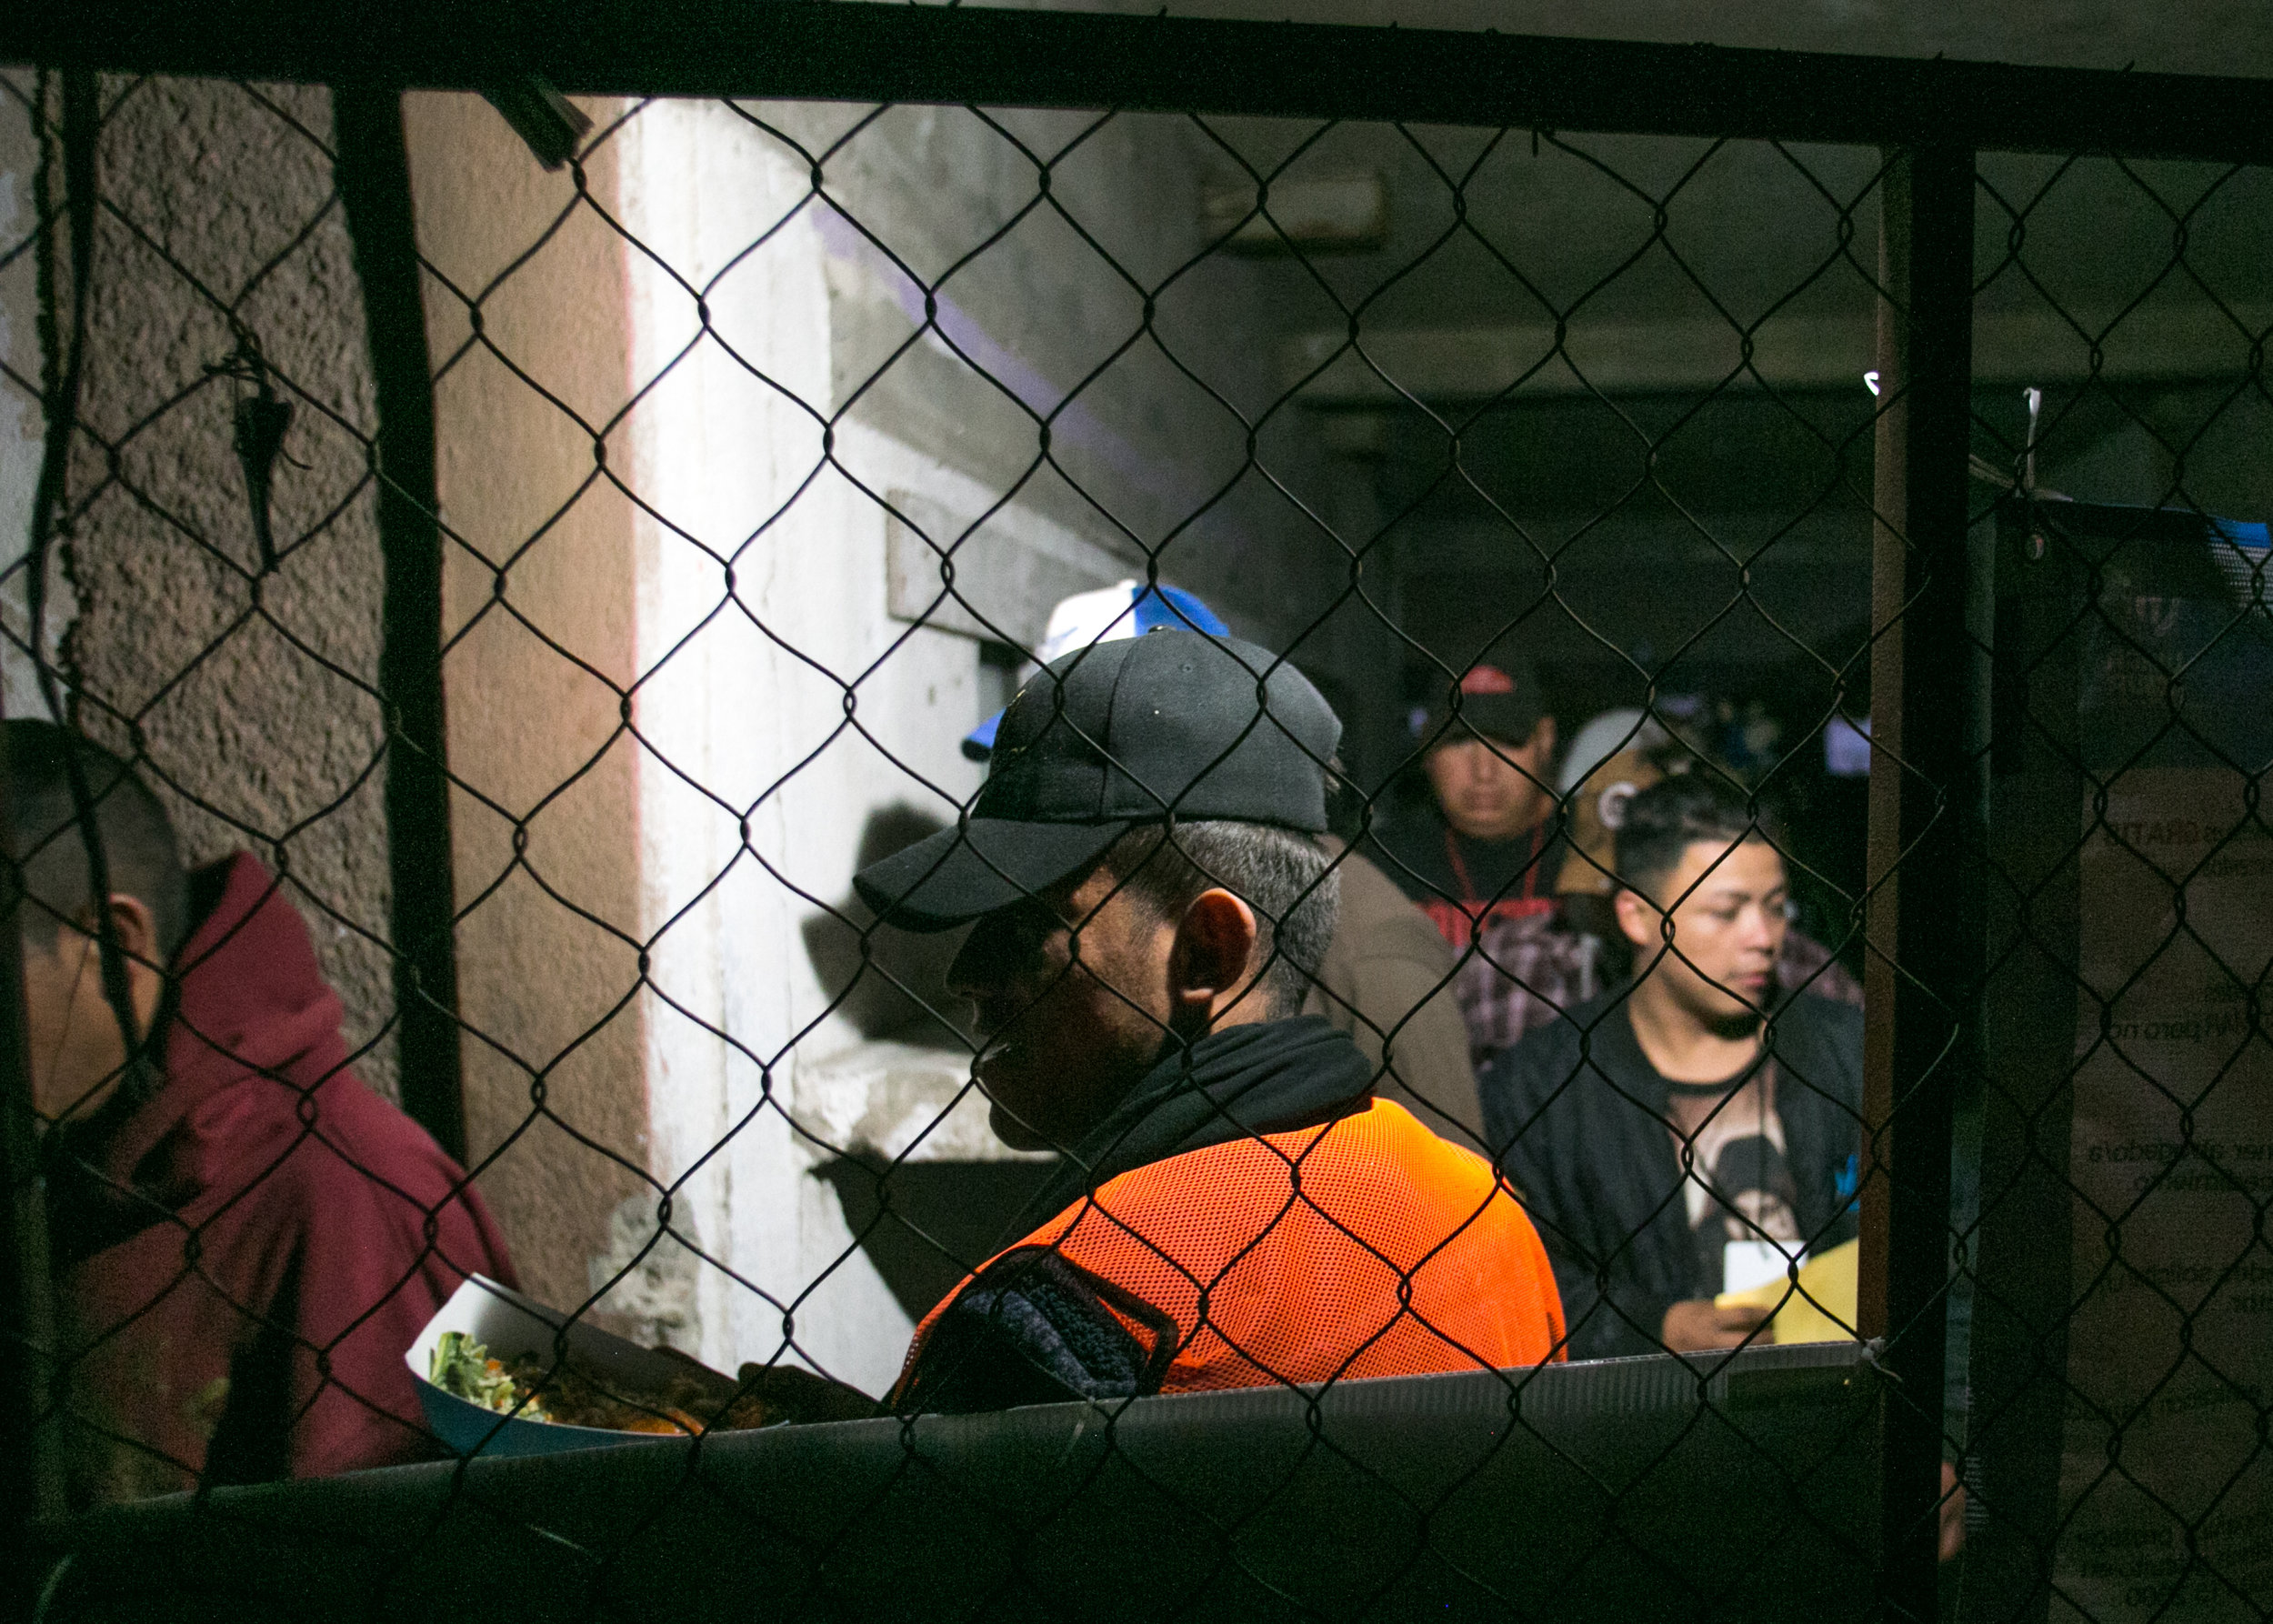 Refugees from the male portion of the compound eagerly wait their turn to enter the family side of the facility for dinner. Each night World Central Kitchen served between 1,200 and 1,500 meals. The line stretched over 100 yards in the other direction.